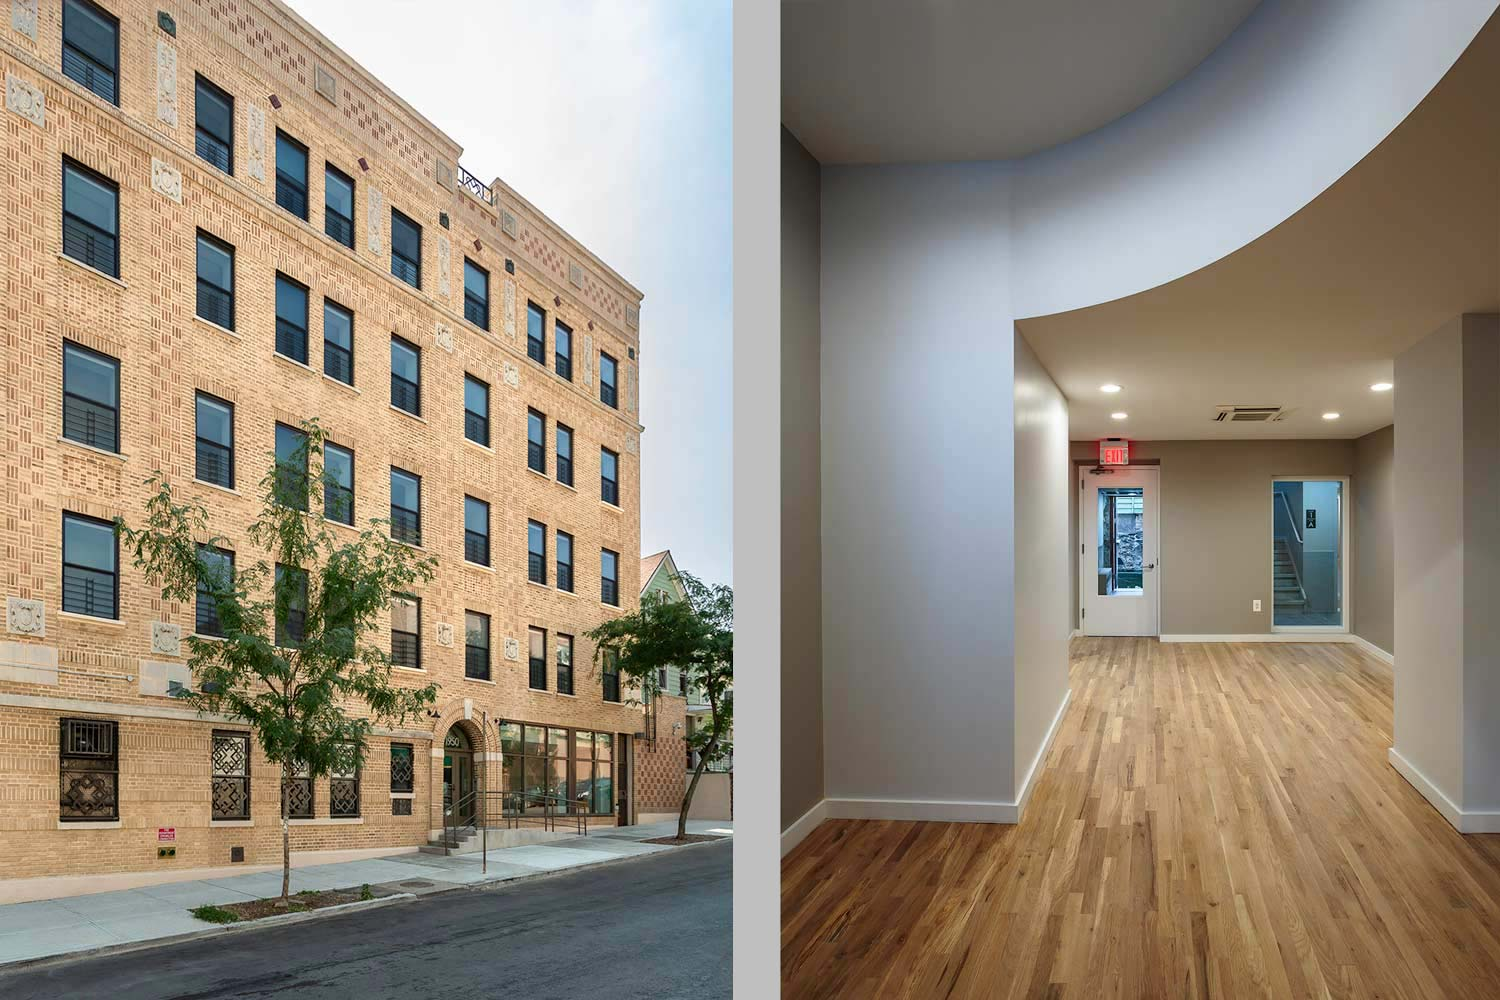 Rehabilitated and reconfigured by OCV, Lee Goodwin provides counseling offices, community spaces and apartments